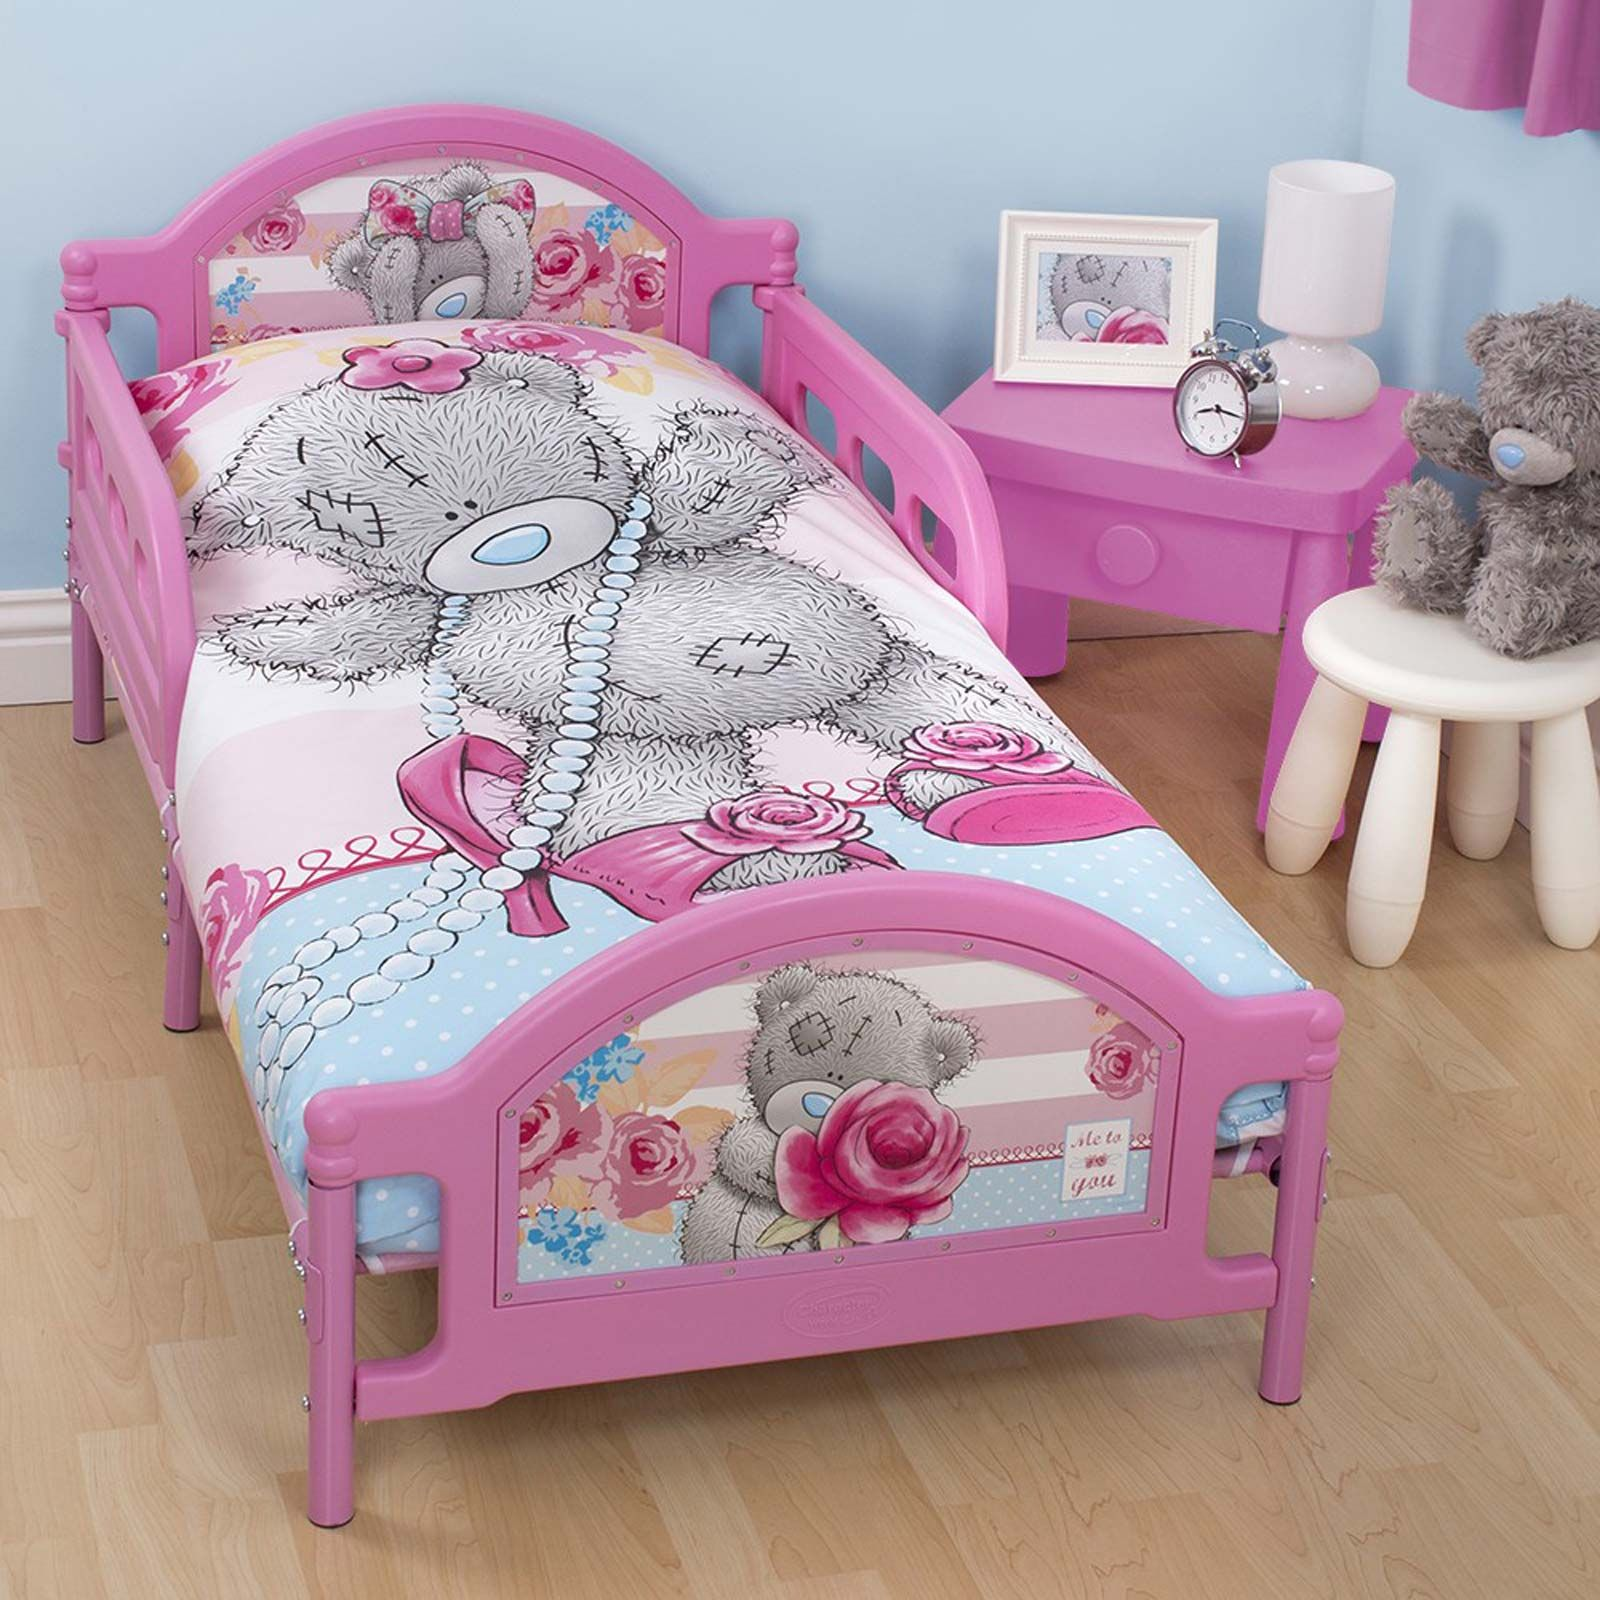 PEPPA PIG 039 FUNFAIR JUNIOR COT BED